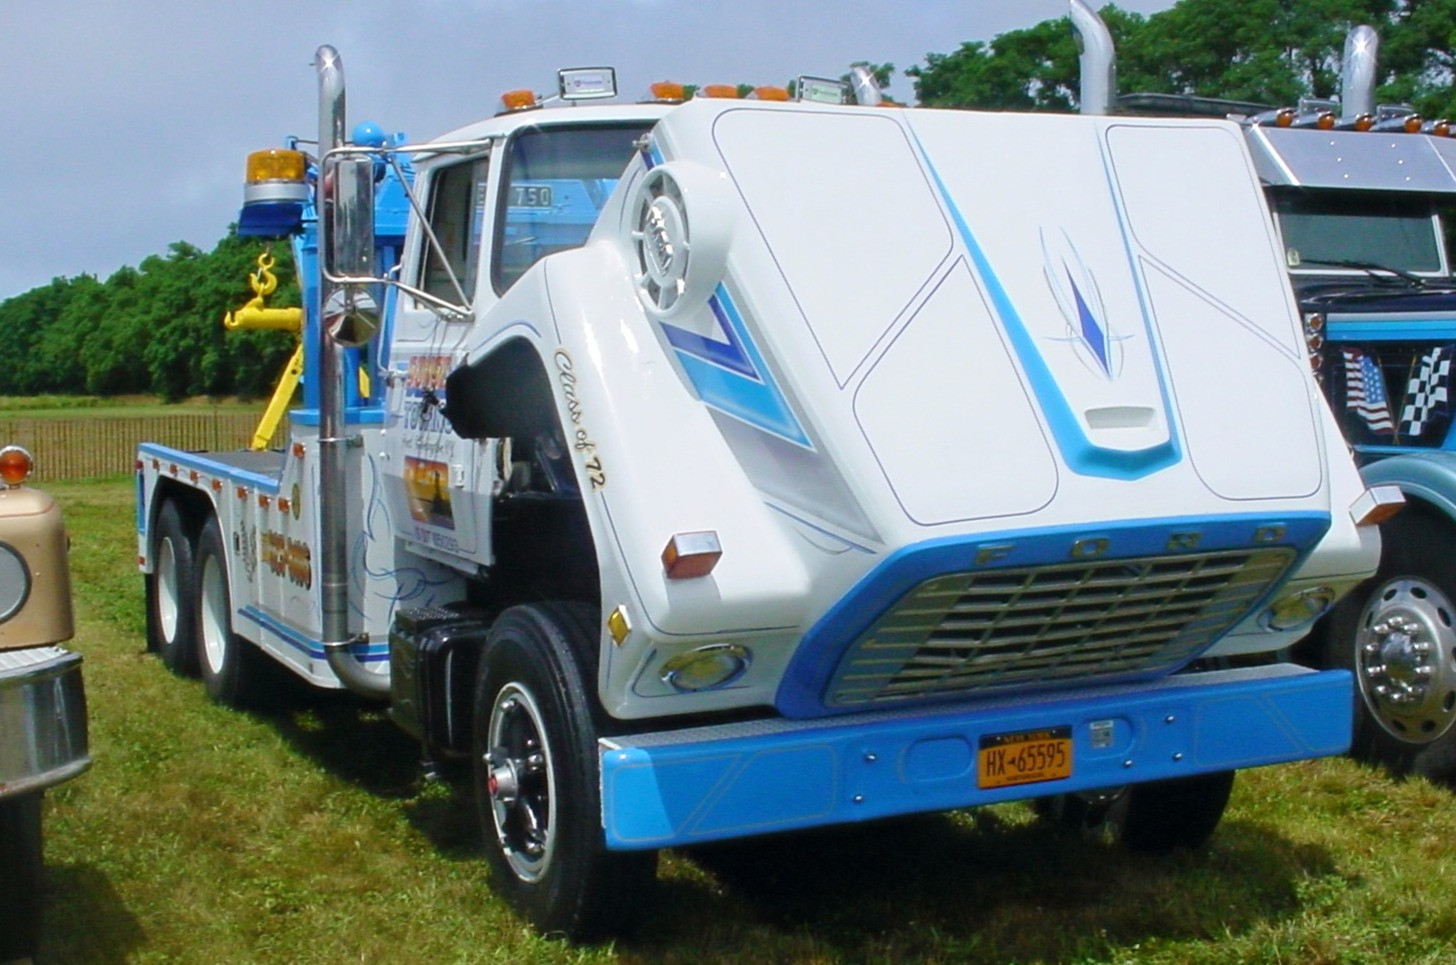 Barry Stanchio's 1972 Ford LT-9000 wrecker